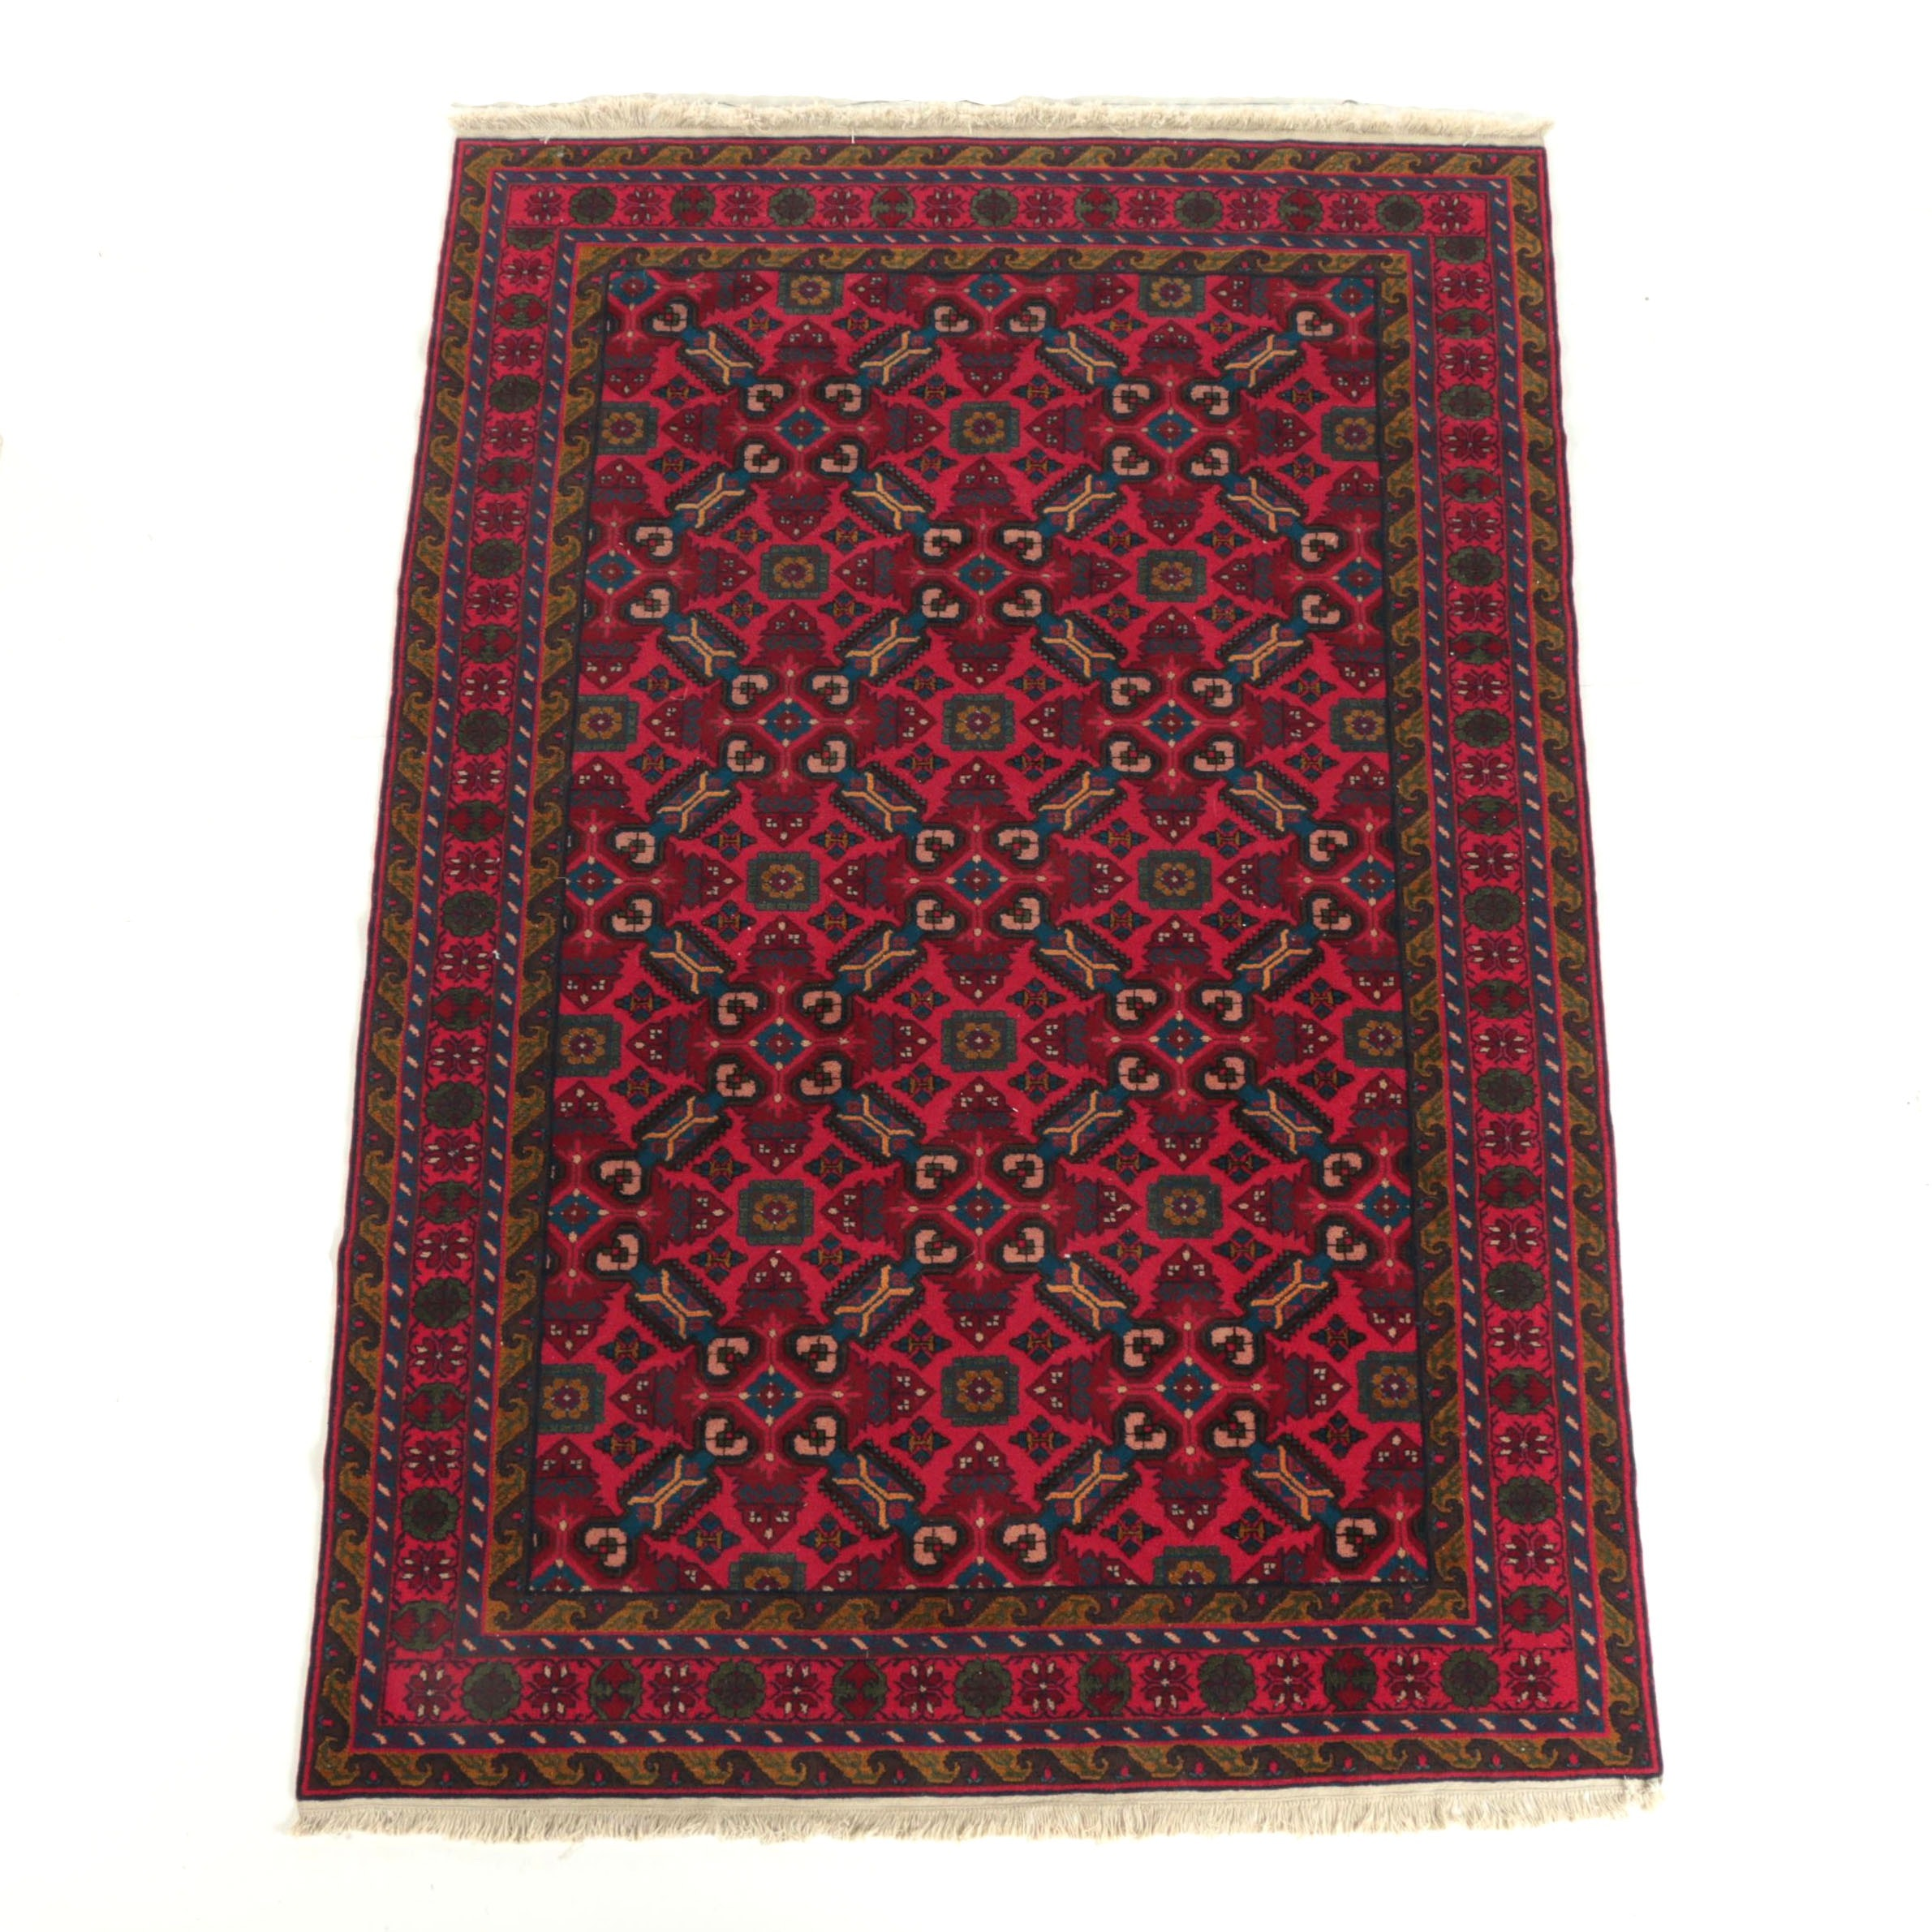 Hand-Knotted Beshir-Style Bokhara Wool Area Rug